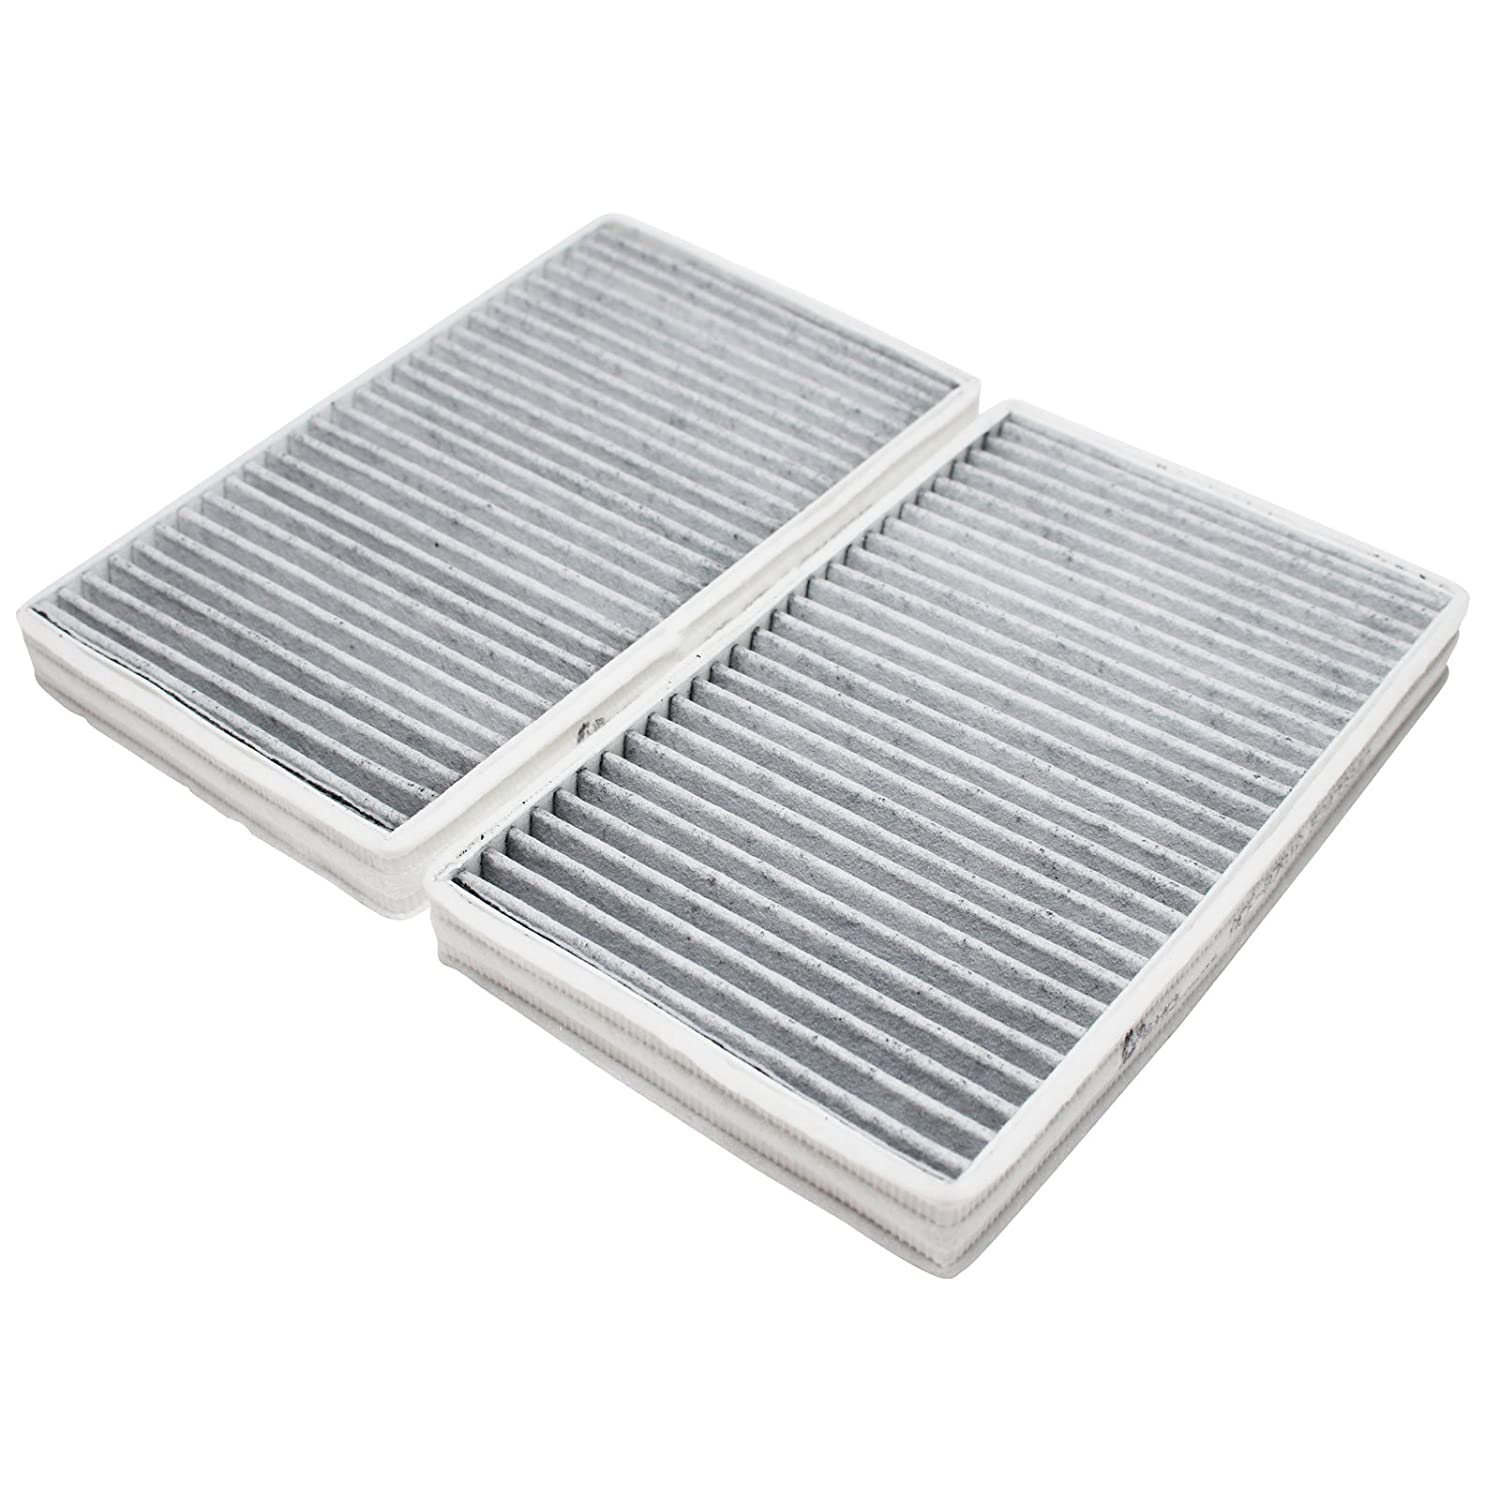 ACF-8791A 3-Pack Replacement Cabin Air Filter for 2001 Chevrolet Silverado 1500 V6 4.3 Car/Automotive Activated Carbon